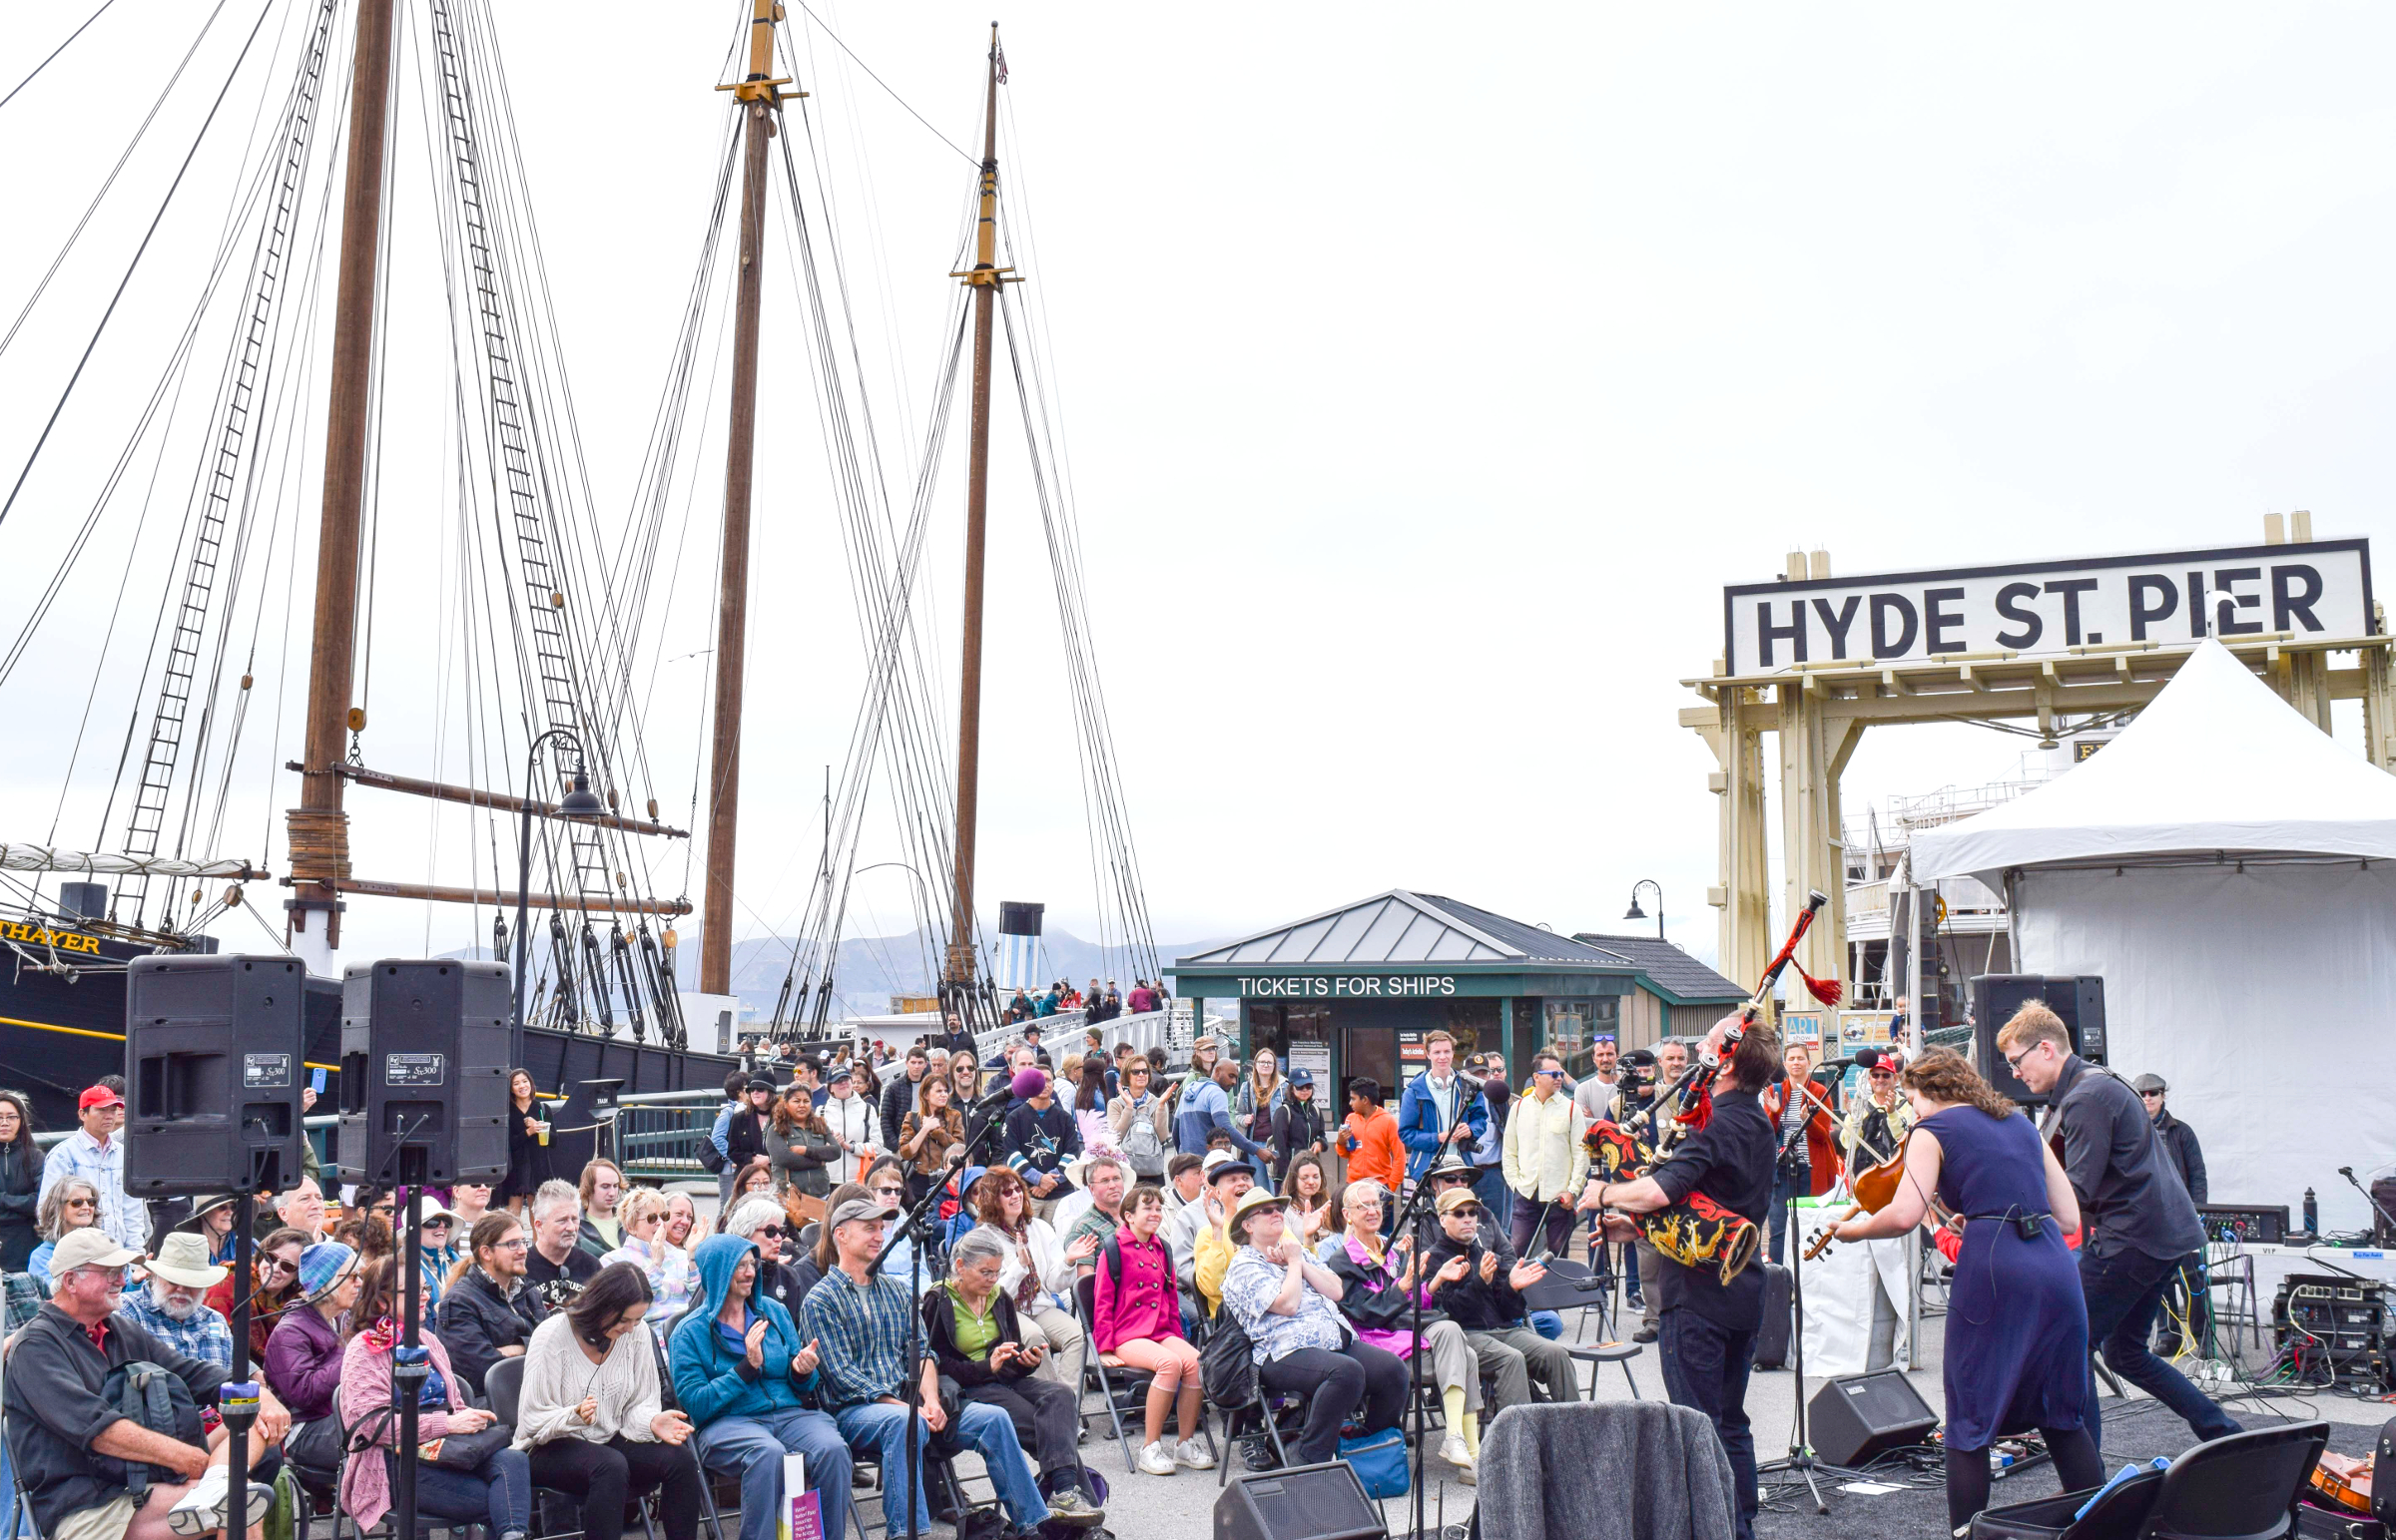 Crowd of people sitting in folding chairs and standing to watch a band perform on a stage near the Eureka ferryboat gangway.